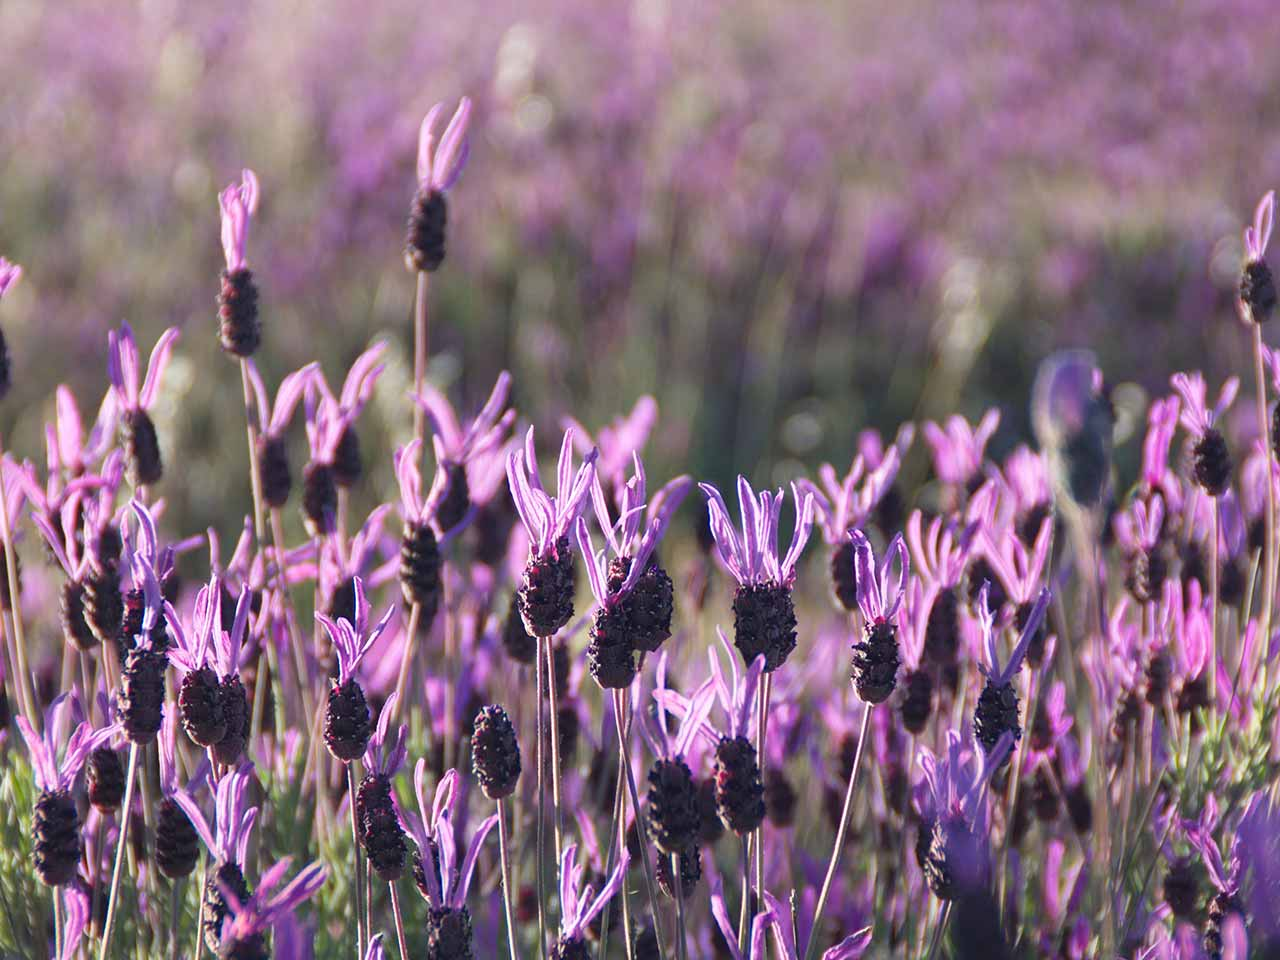 Lavandula stoechas known as French or Spanish lavender